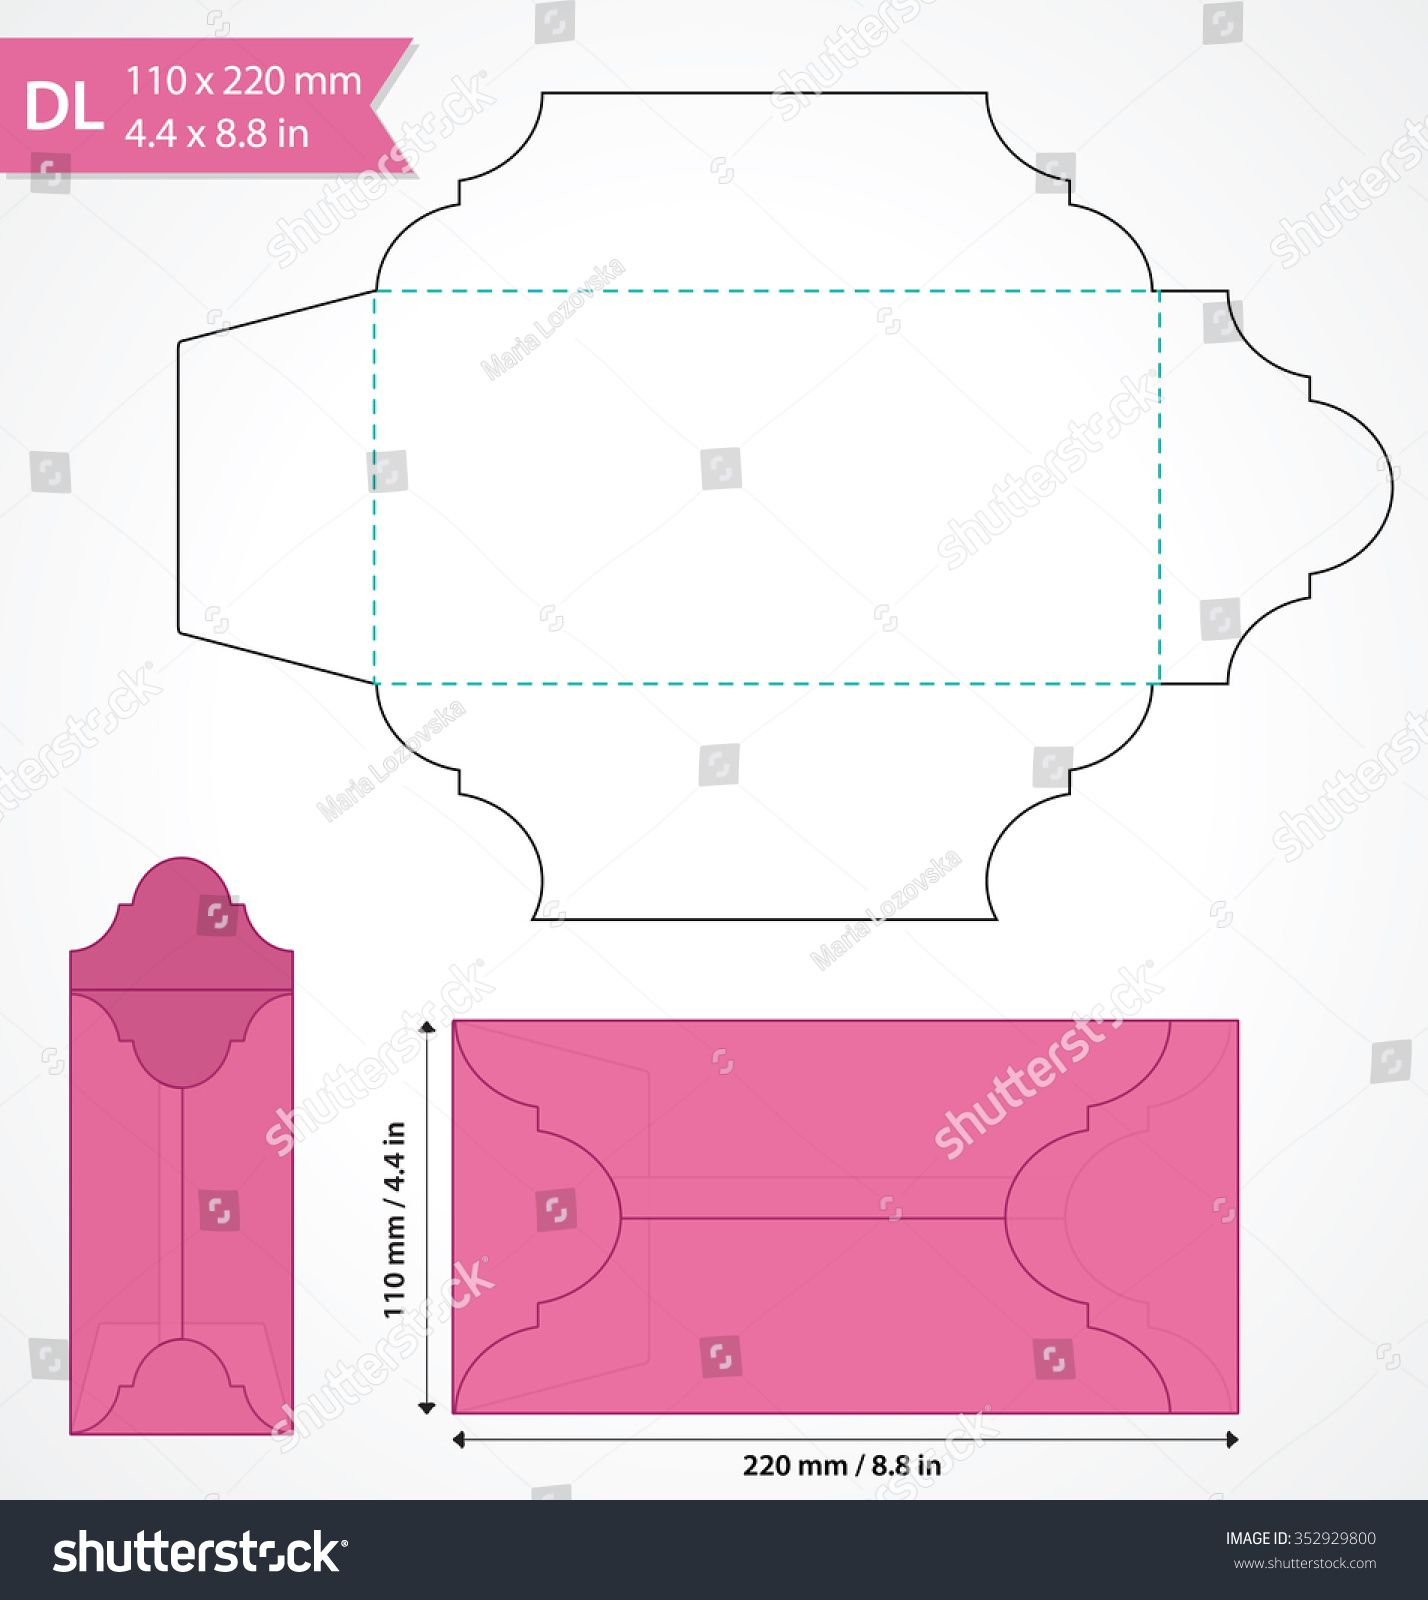 Die cut vector envelope template Standard DL size envelope to hold